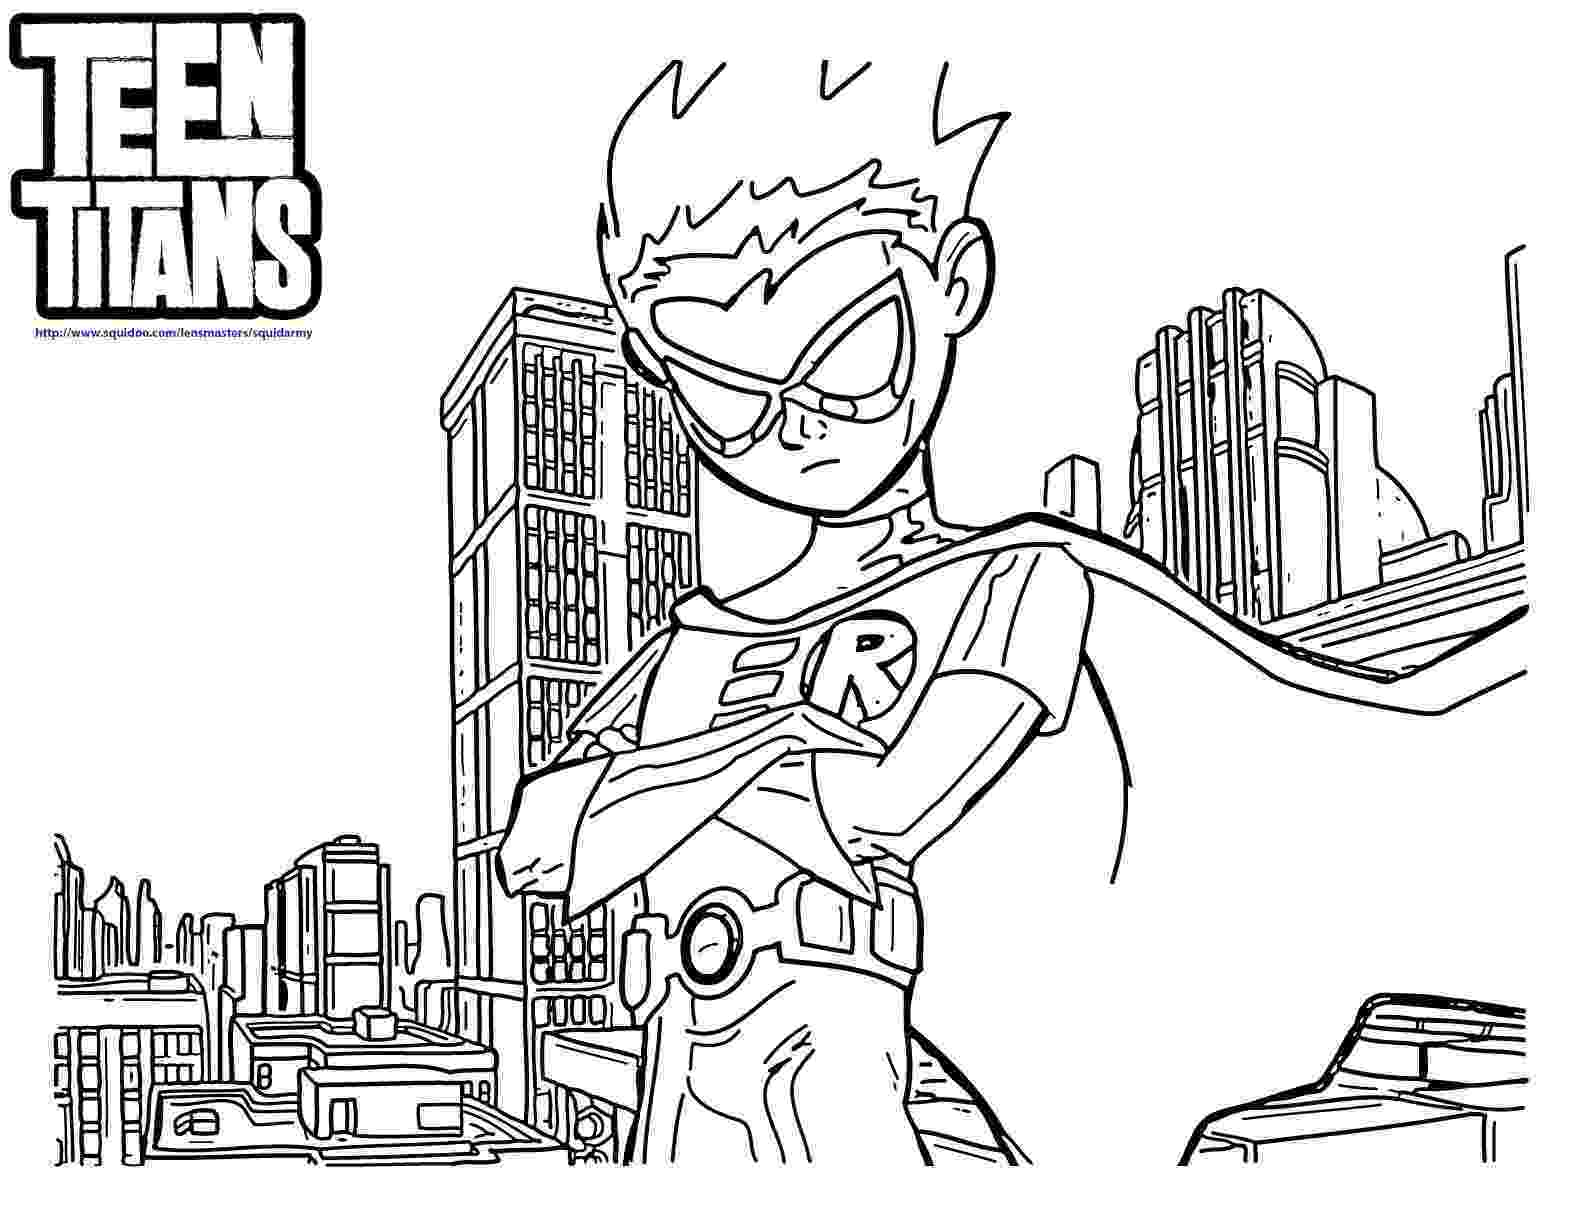 teen titans go coloring pages teen titans go coloring page free printable coloring pages coloring teen go pages titans